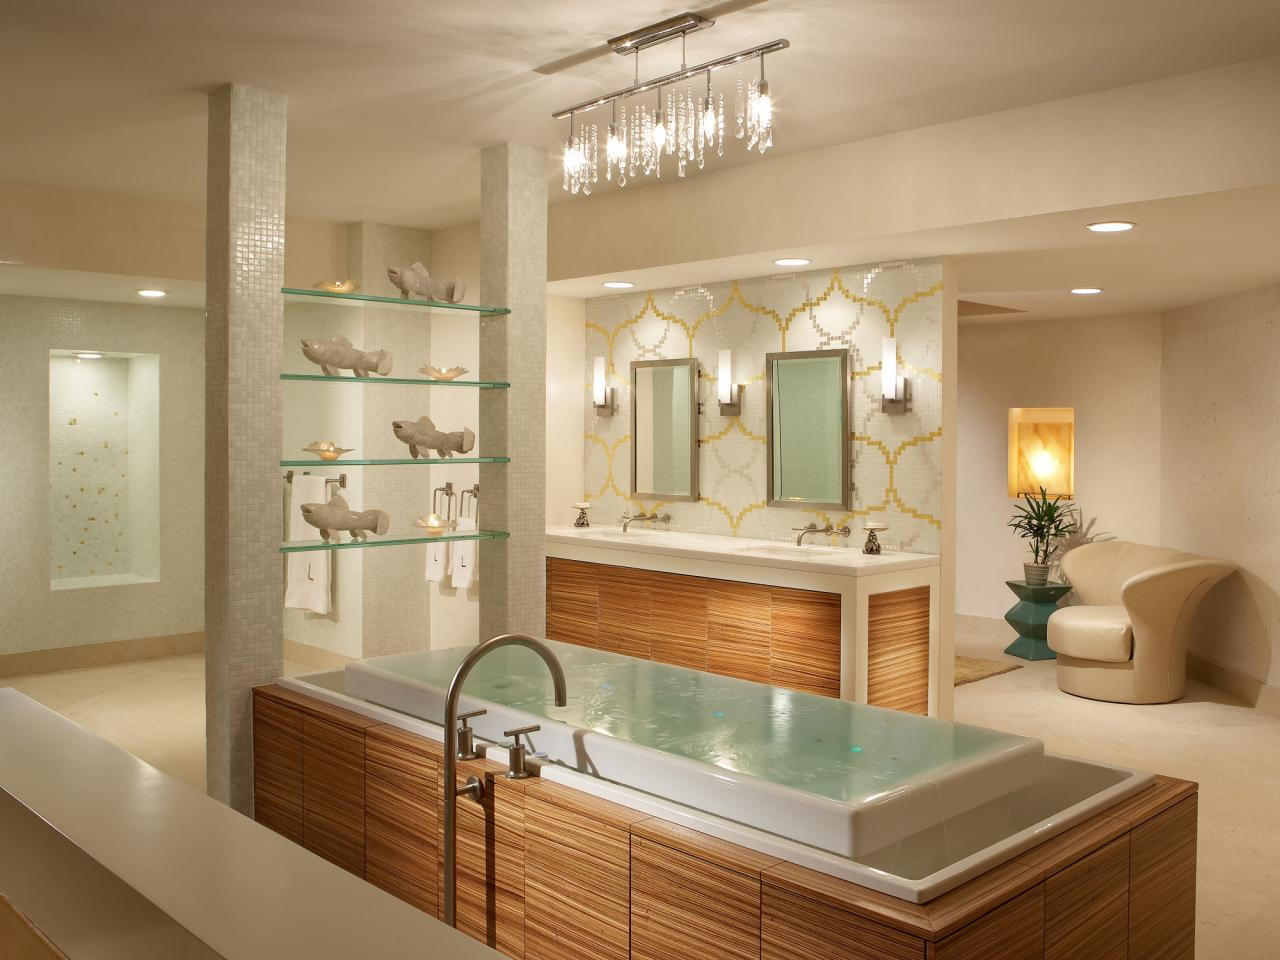 Choosing A Bathroom Layout HGTV - How to plan a bathroom remodel